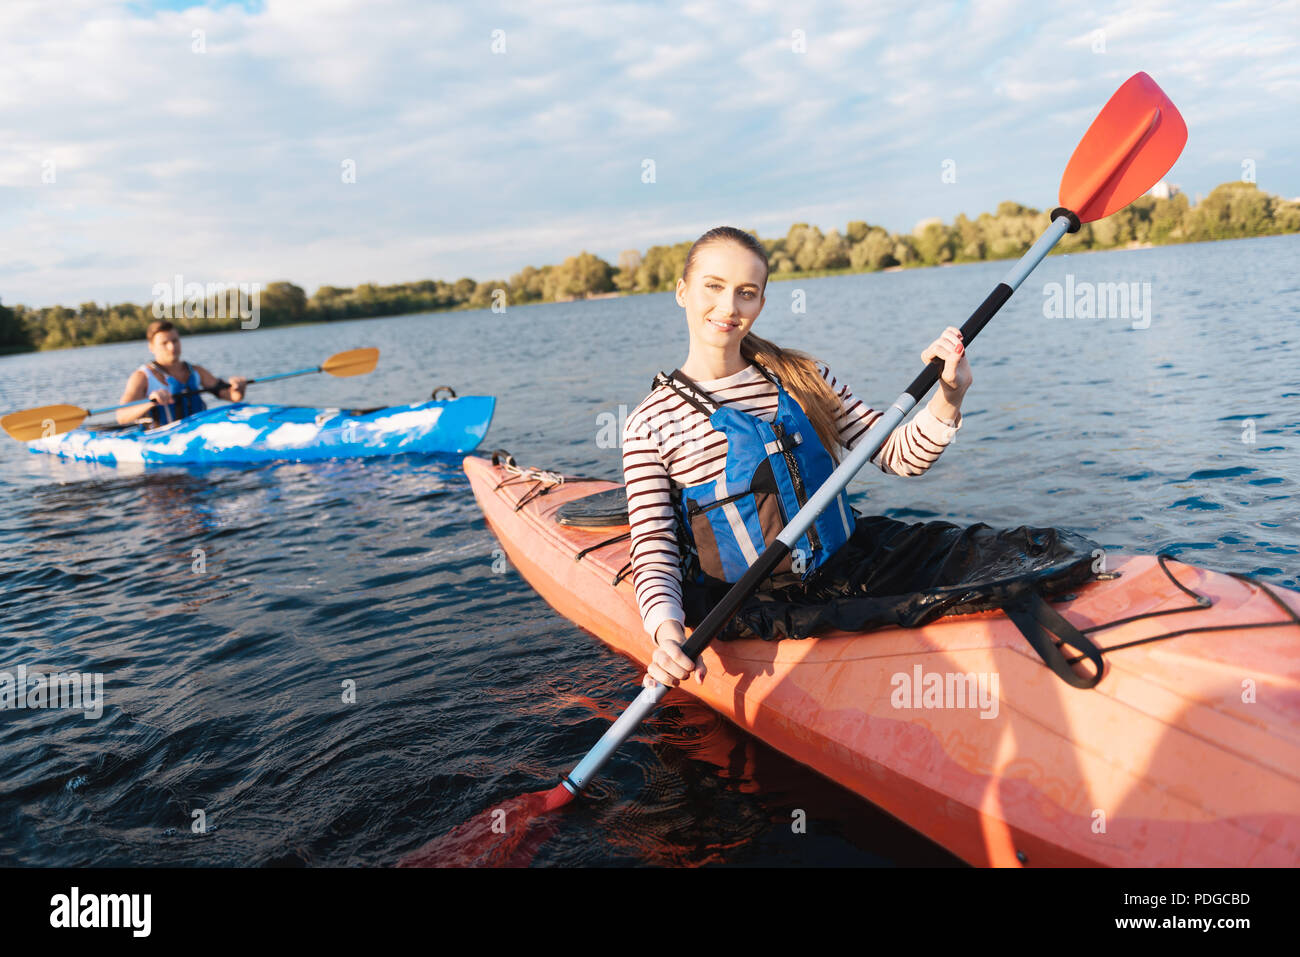 Good-looking woman wearing striped shirt and life vest kayaking - Stock Image